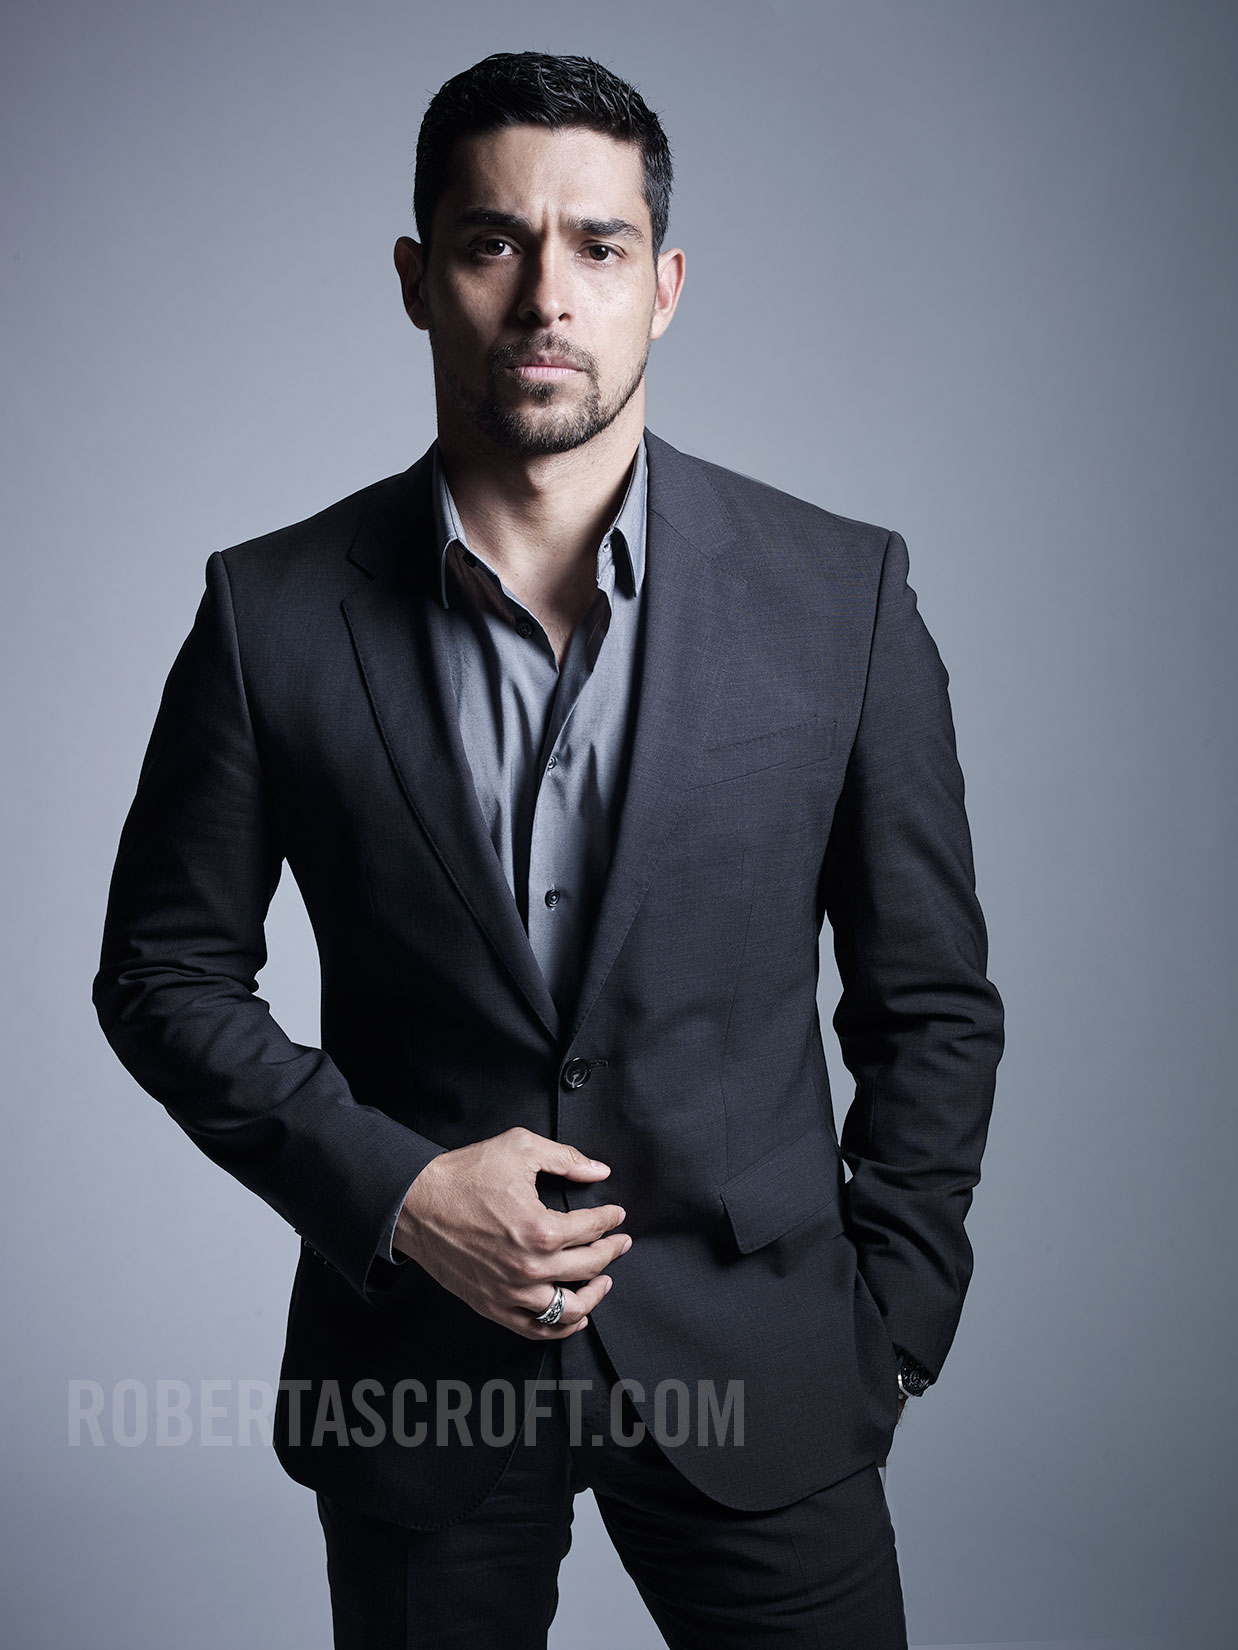 WILMER-VALDERRAMA-by-Robert-Ascroft-01